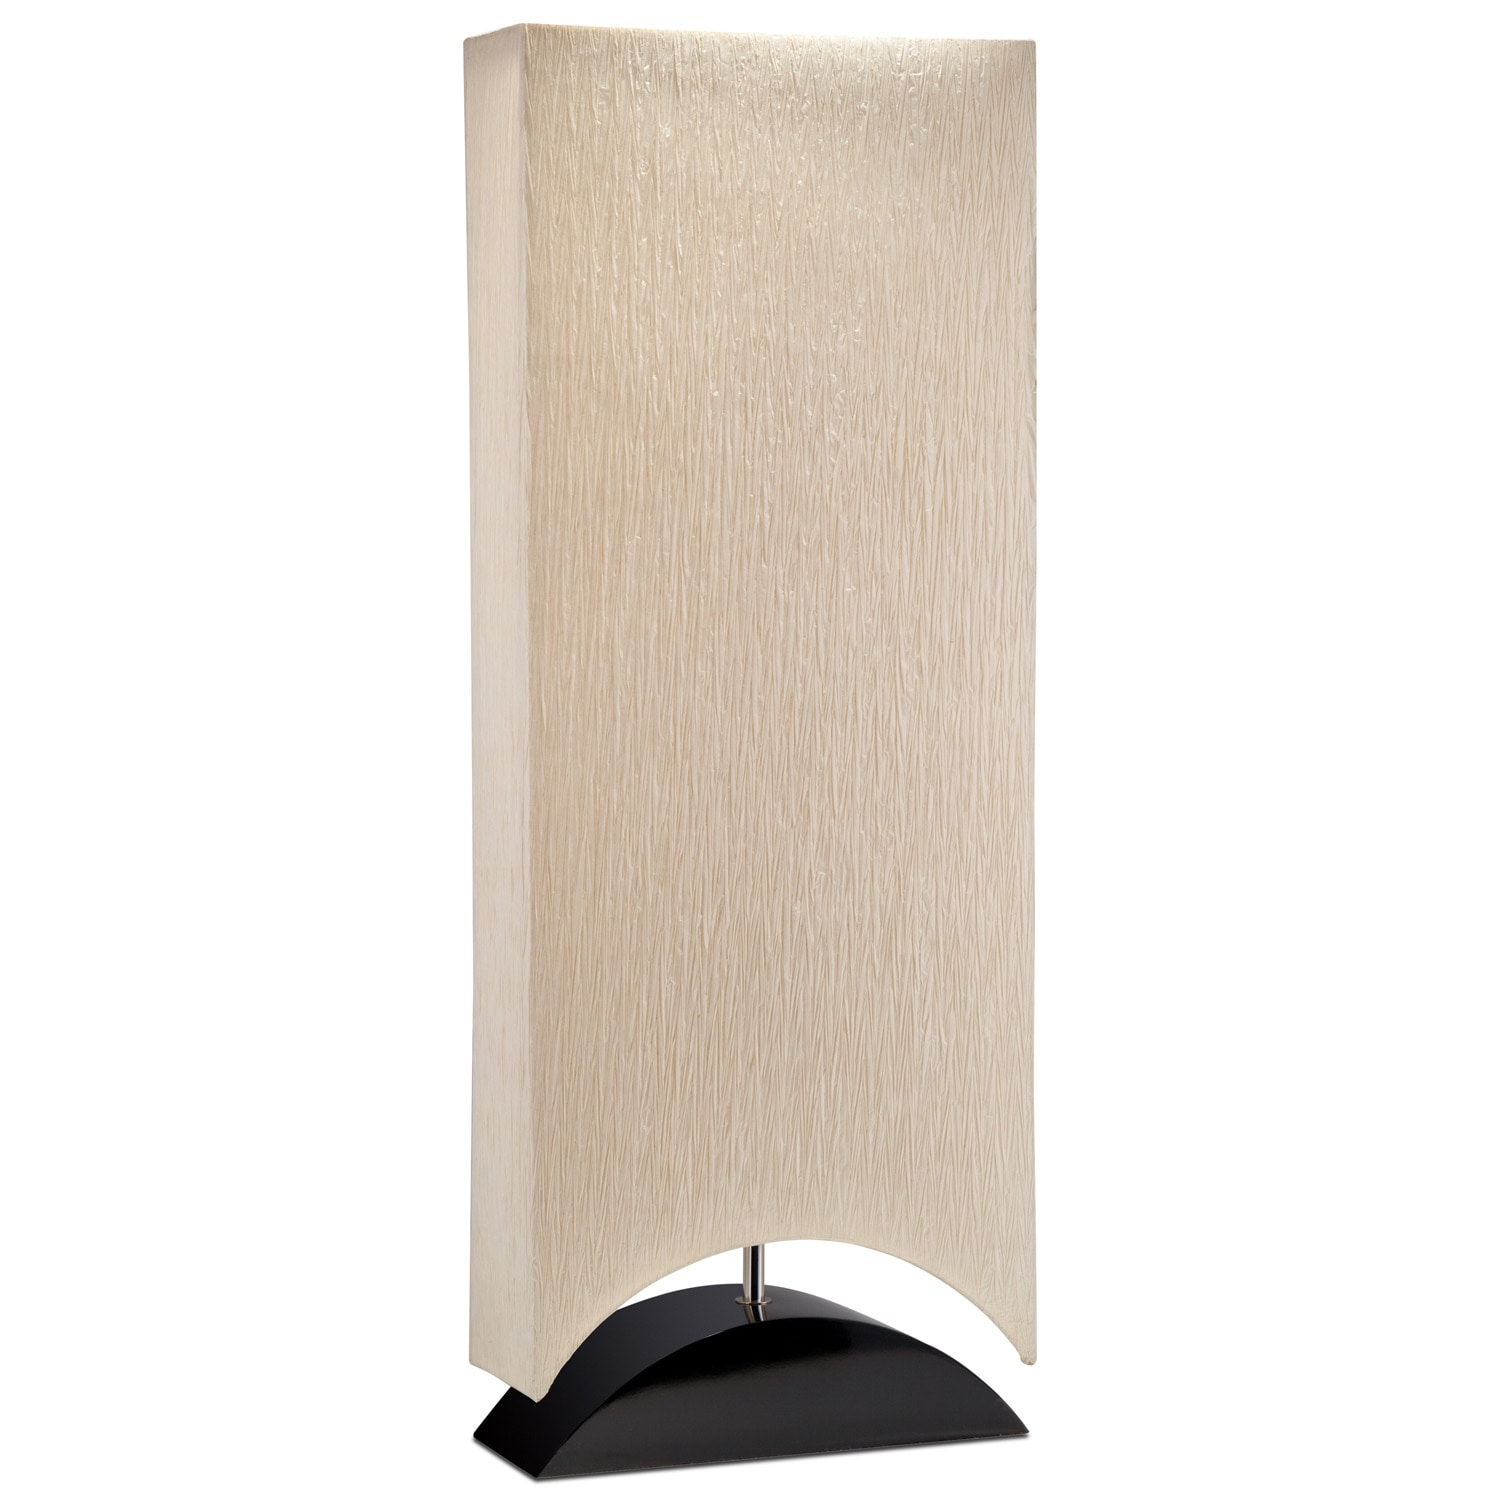 Home Accessories - Paper Shade Floor Lamp